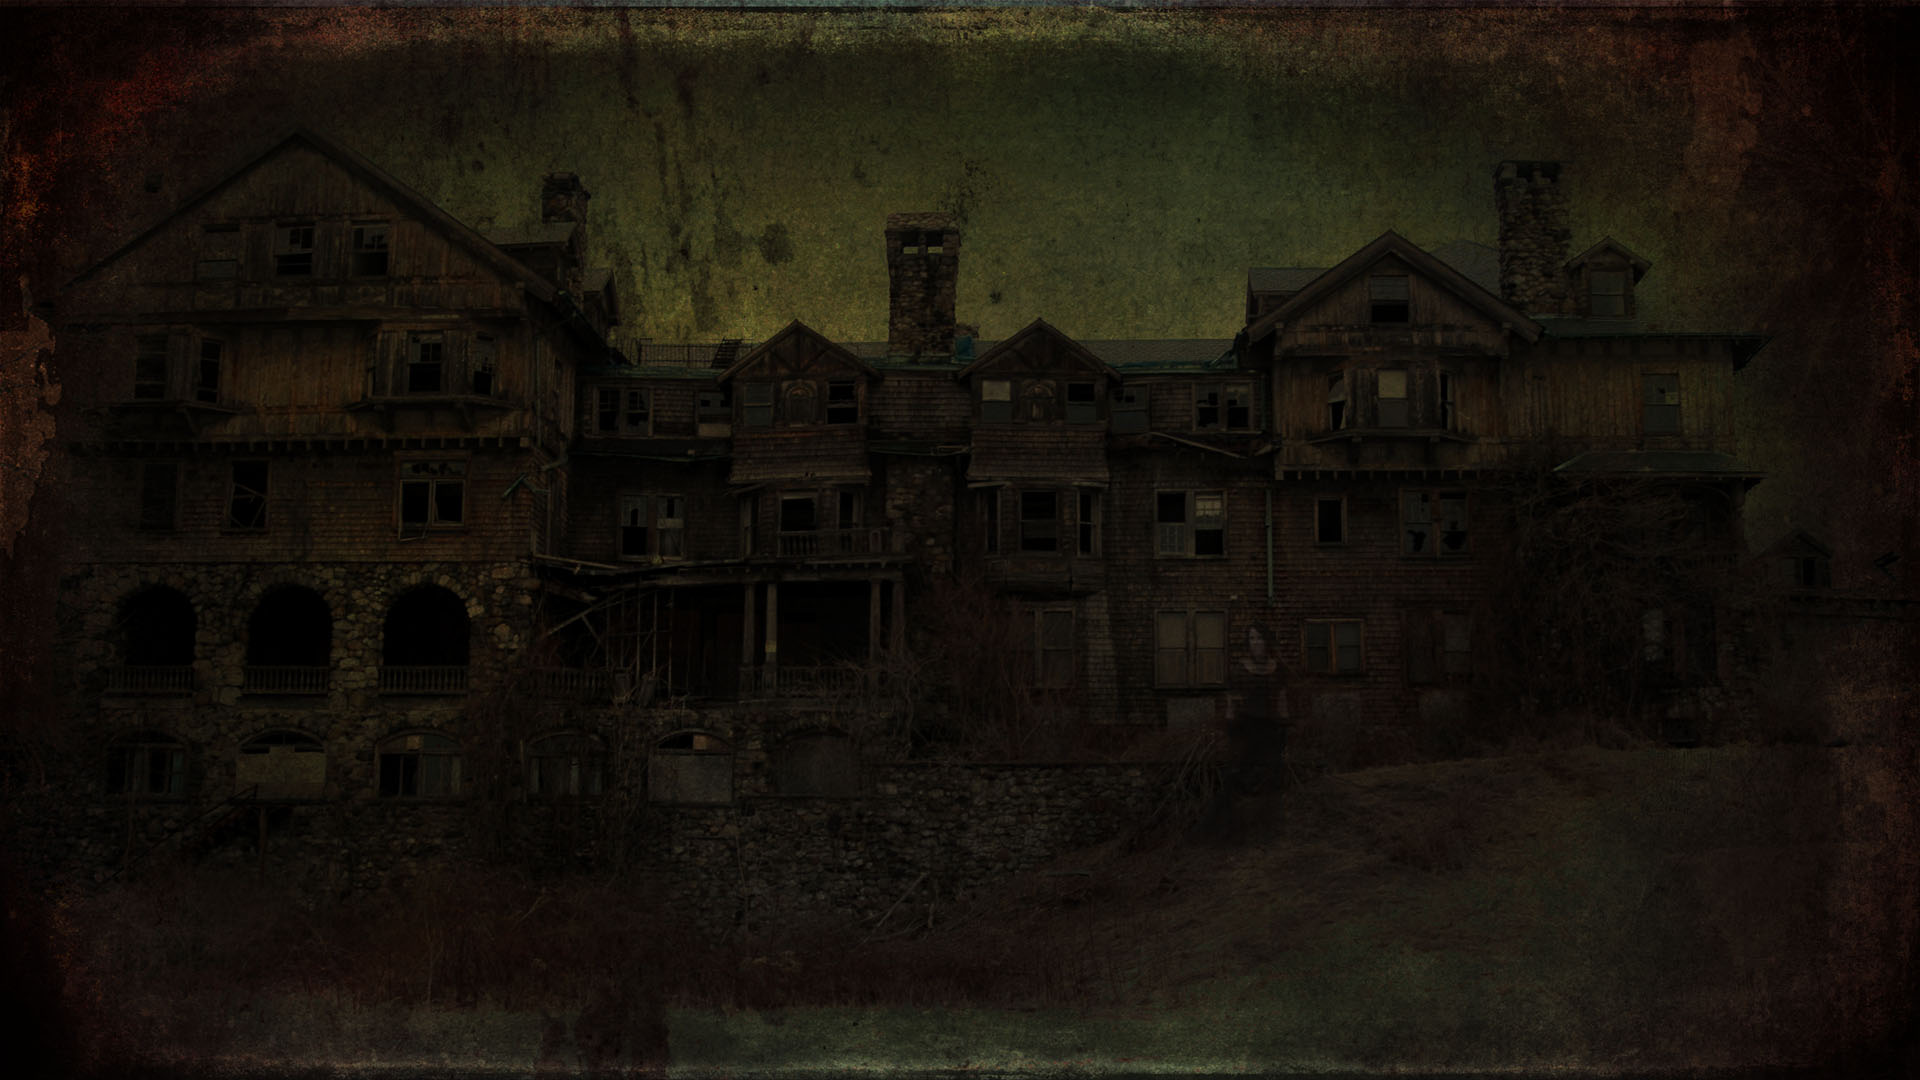 Haunted House wallpapers Haunted House stock photos 1920x1080